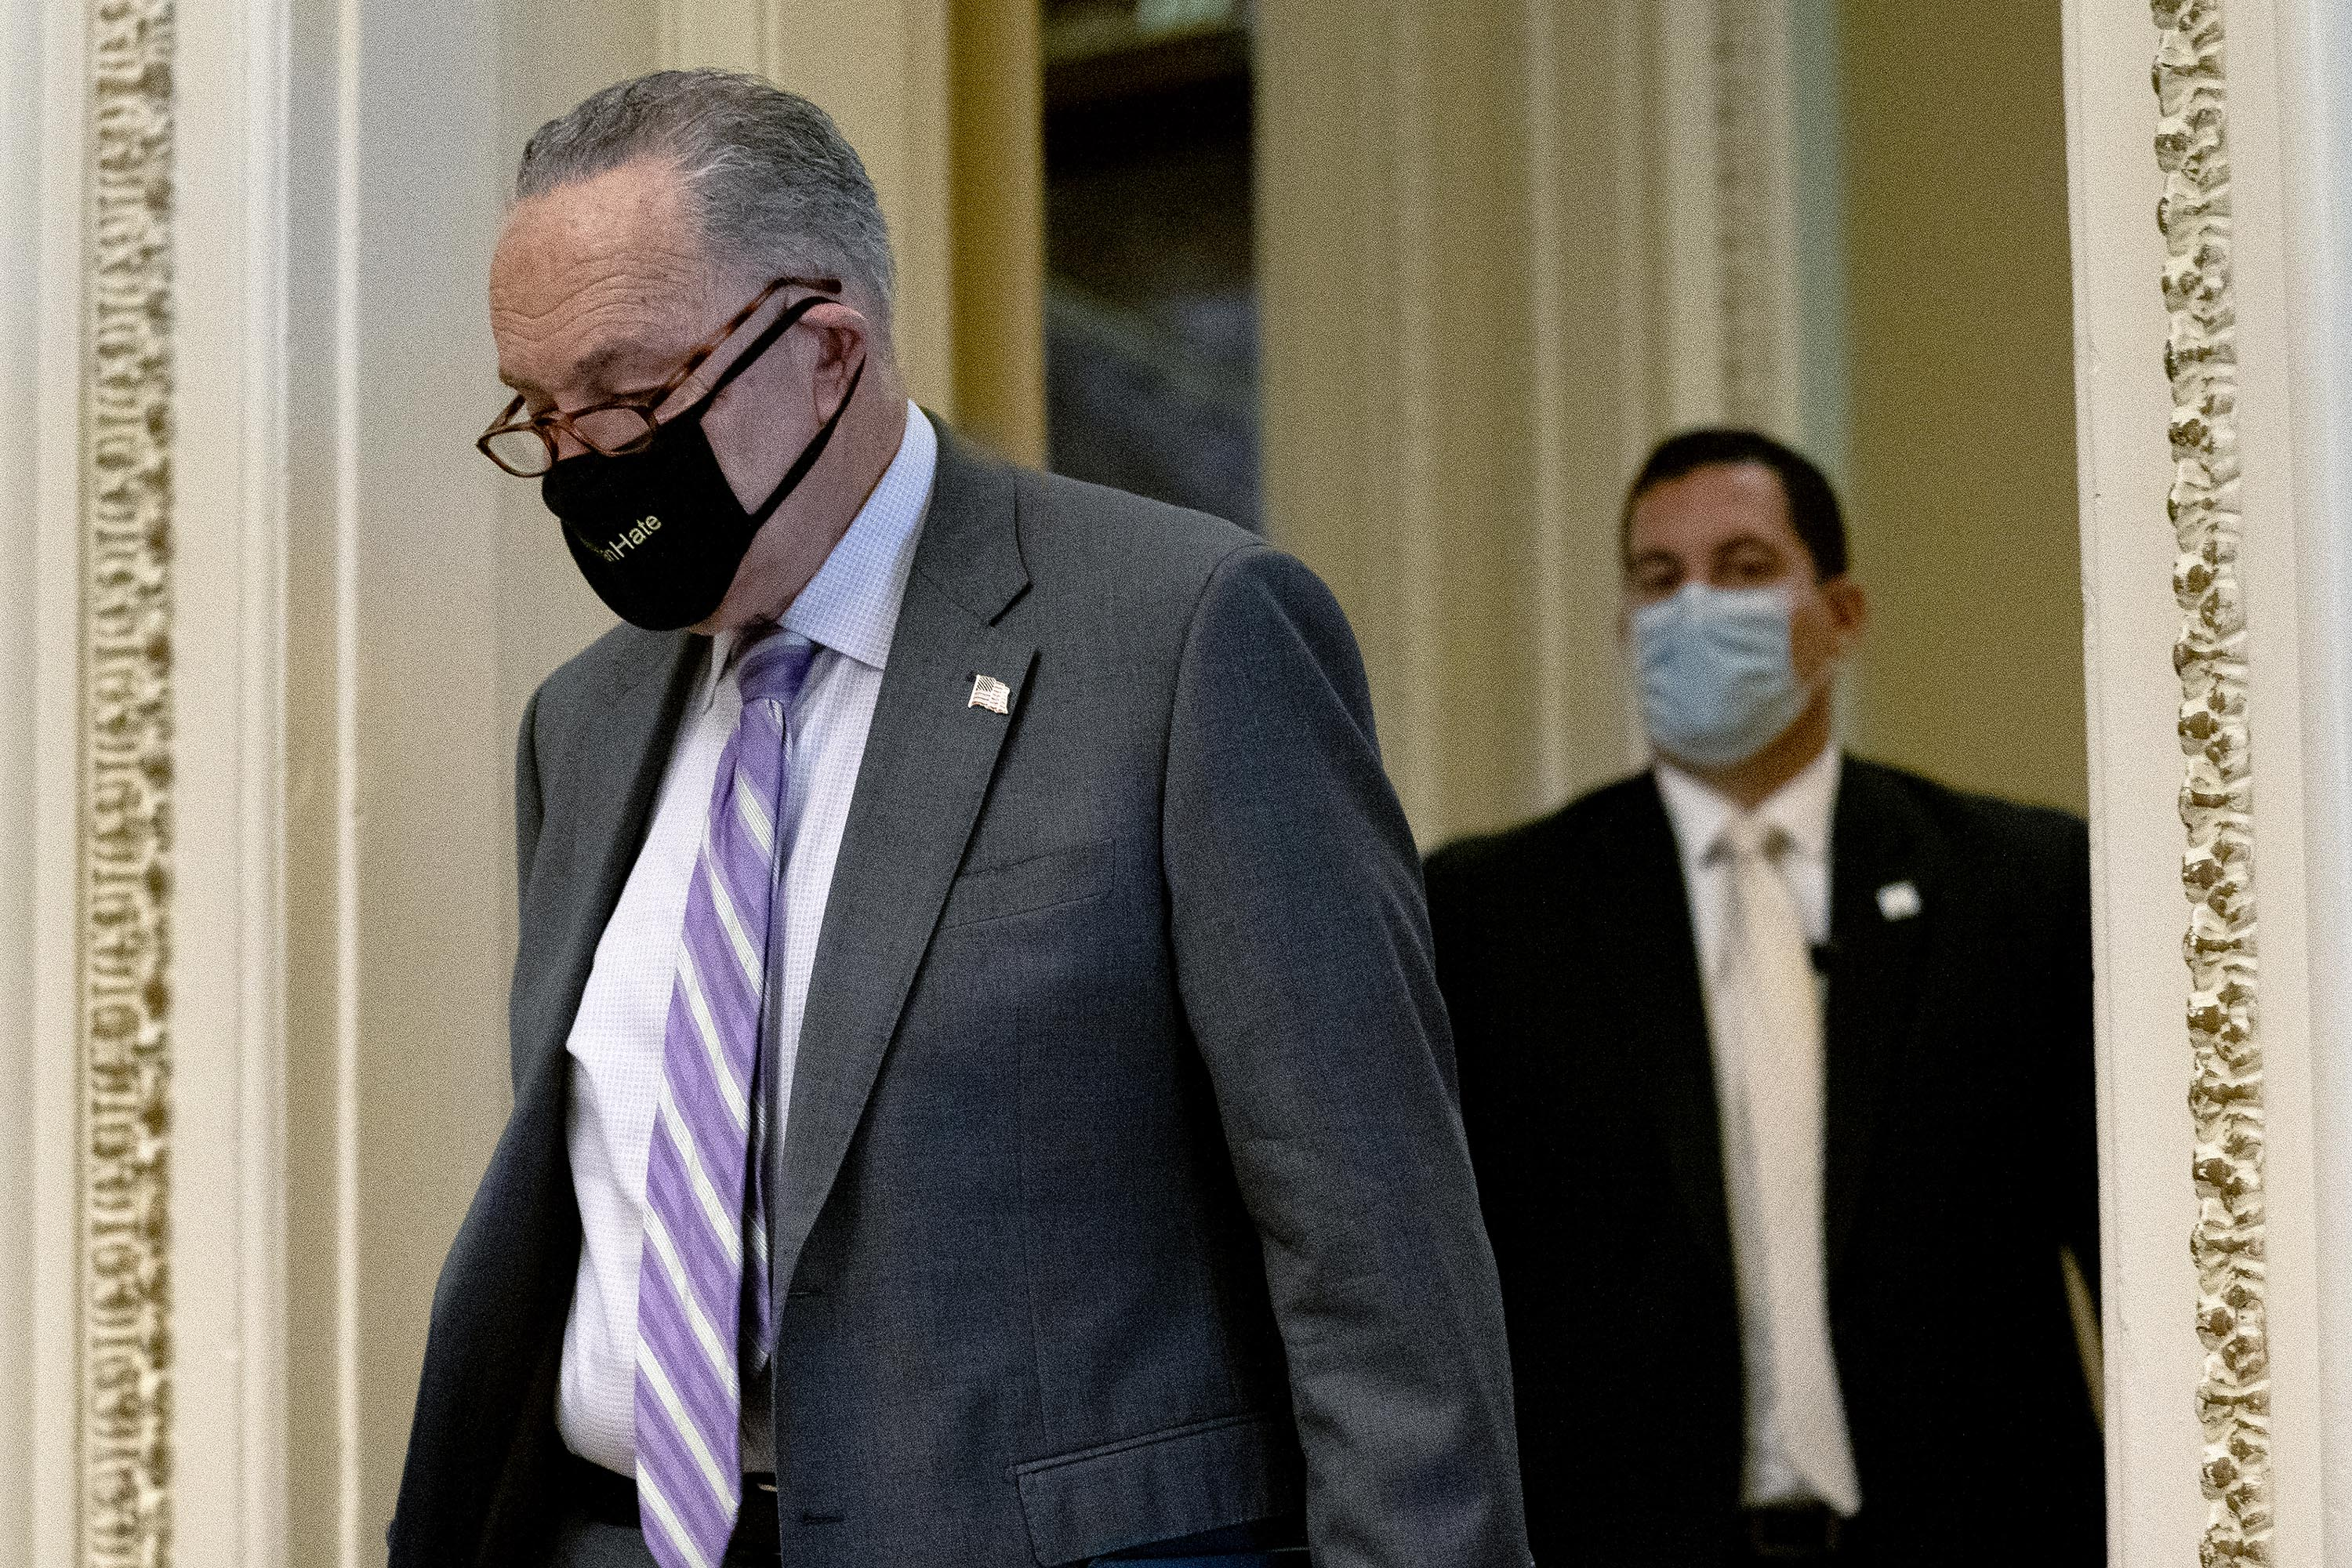 Senate Majority Leader Chuck Schumer arrives at the U.S. Capitol in Washington, D.C. on Wednesday, April 21.